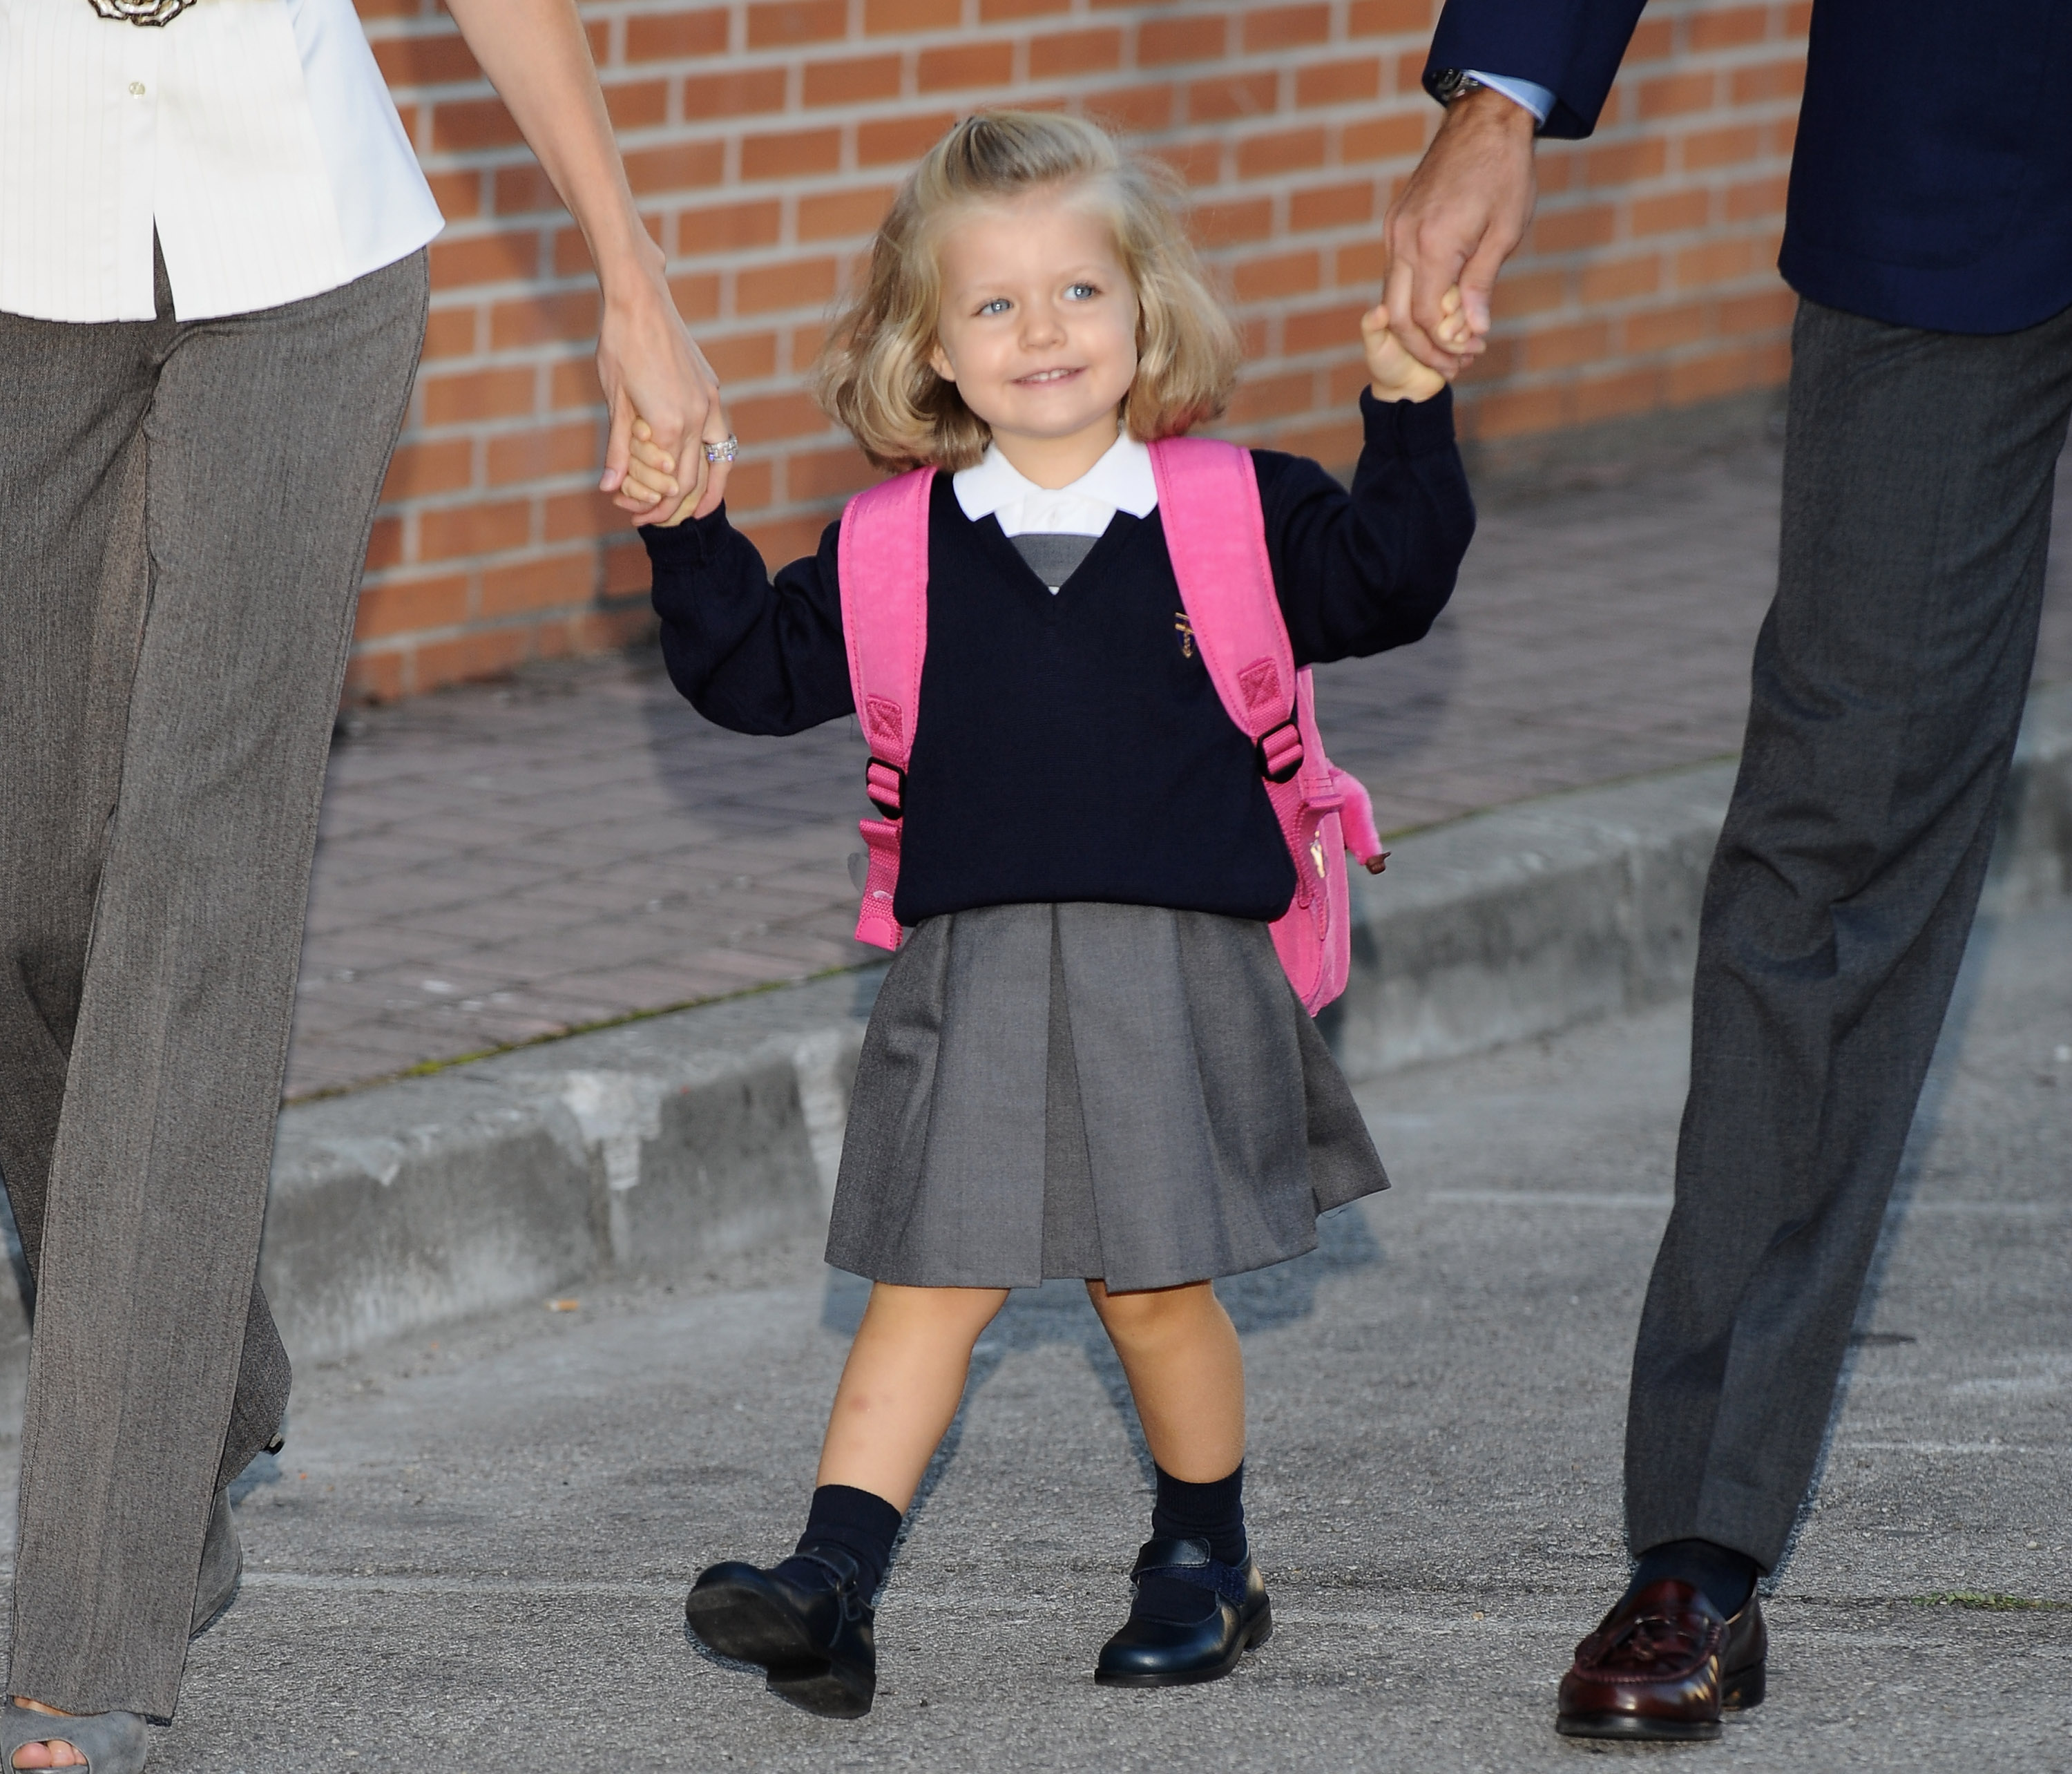 Leonor of Spain Attends First Day of School